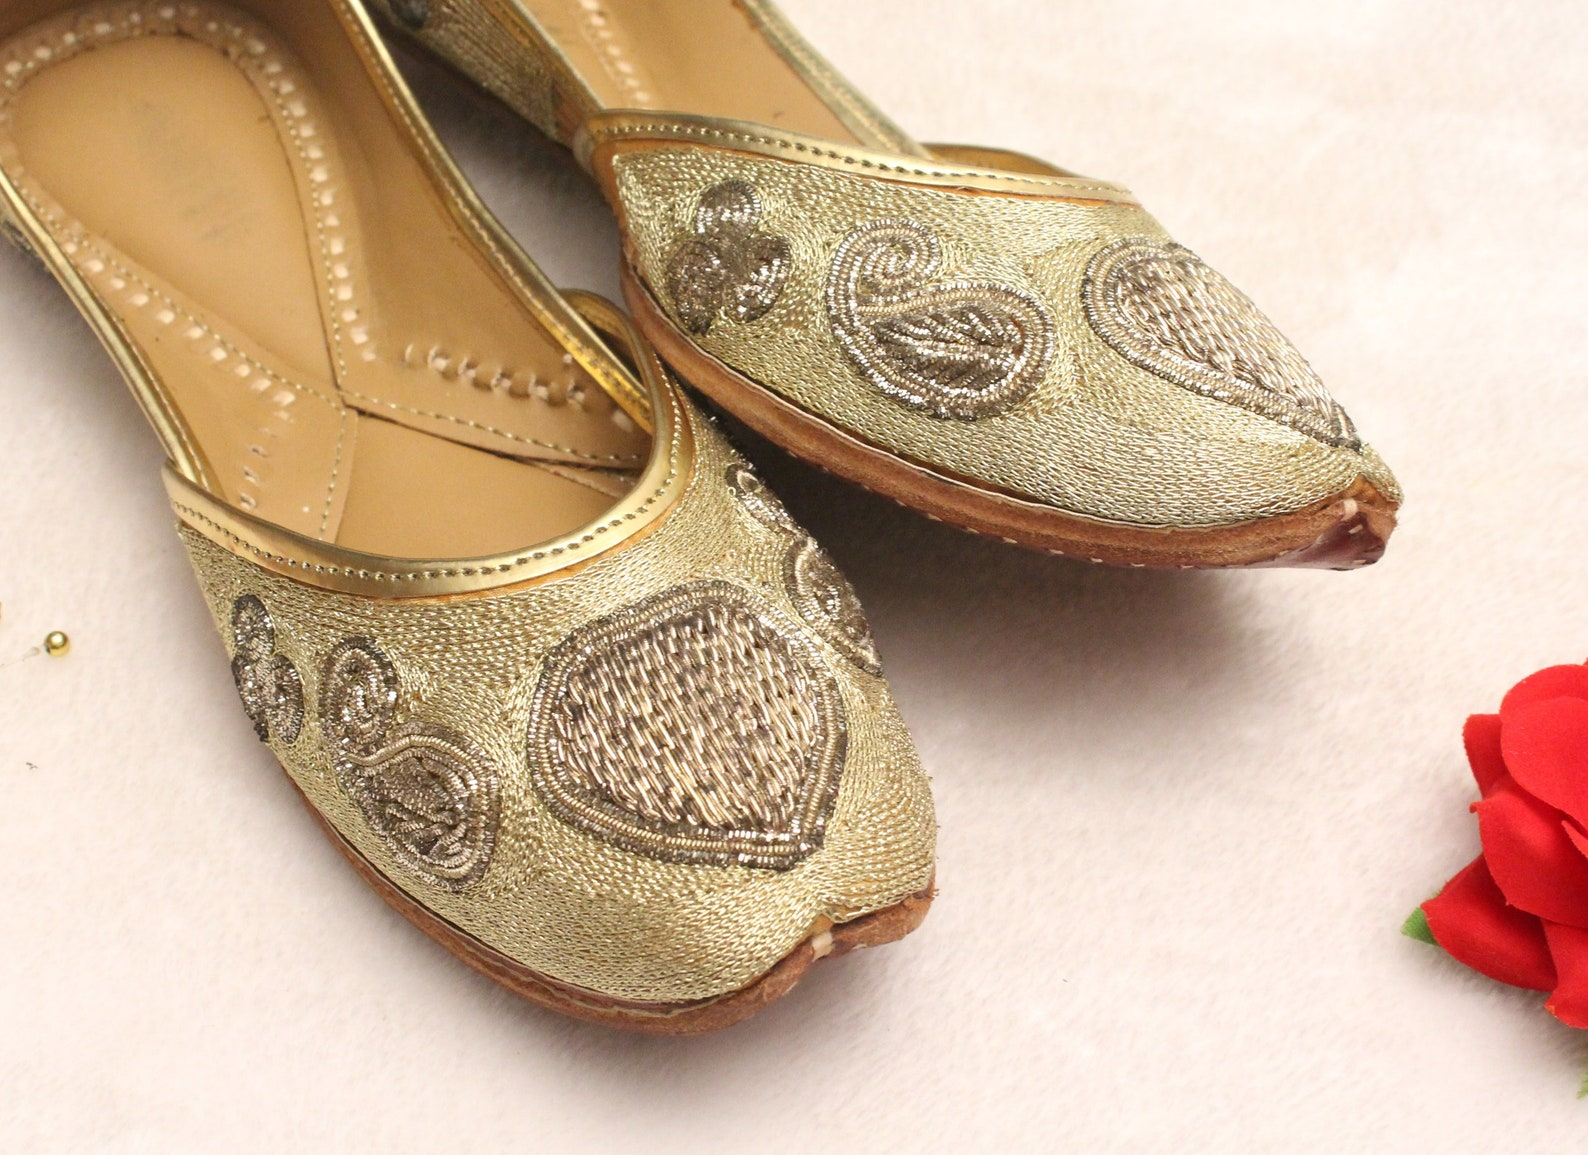 women gold shoes bridal wedding/indian gold jutti shoes/gold wedding flats/gold ballet flats/jasmine shoes/khussa shoes/rani sho